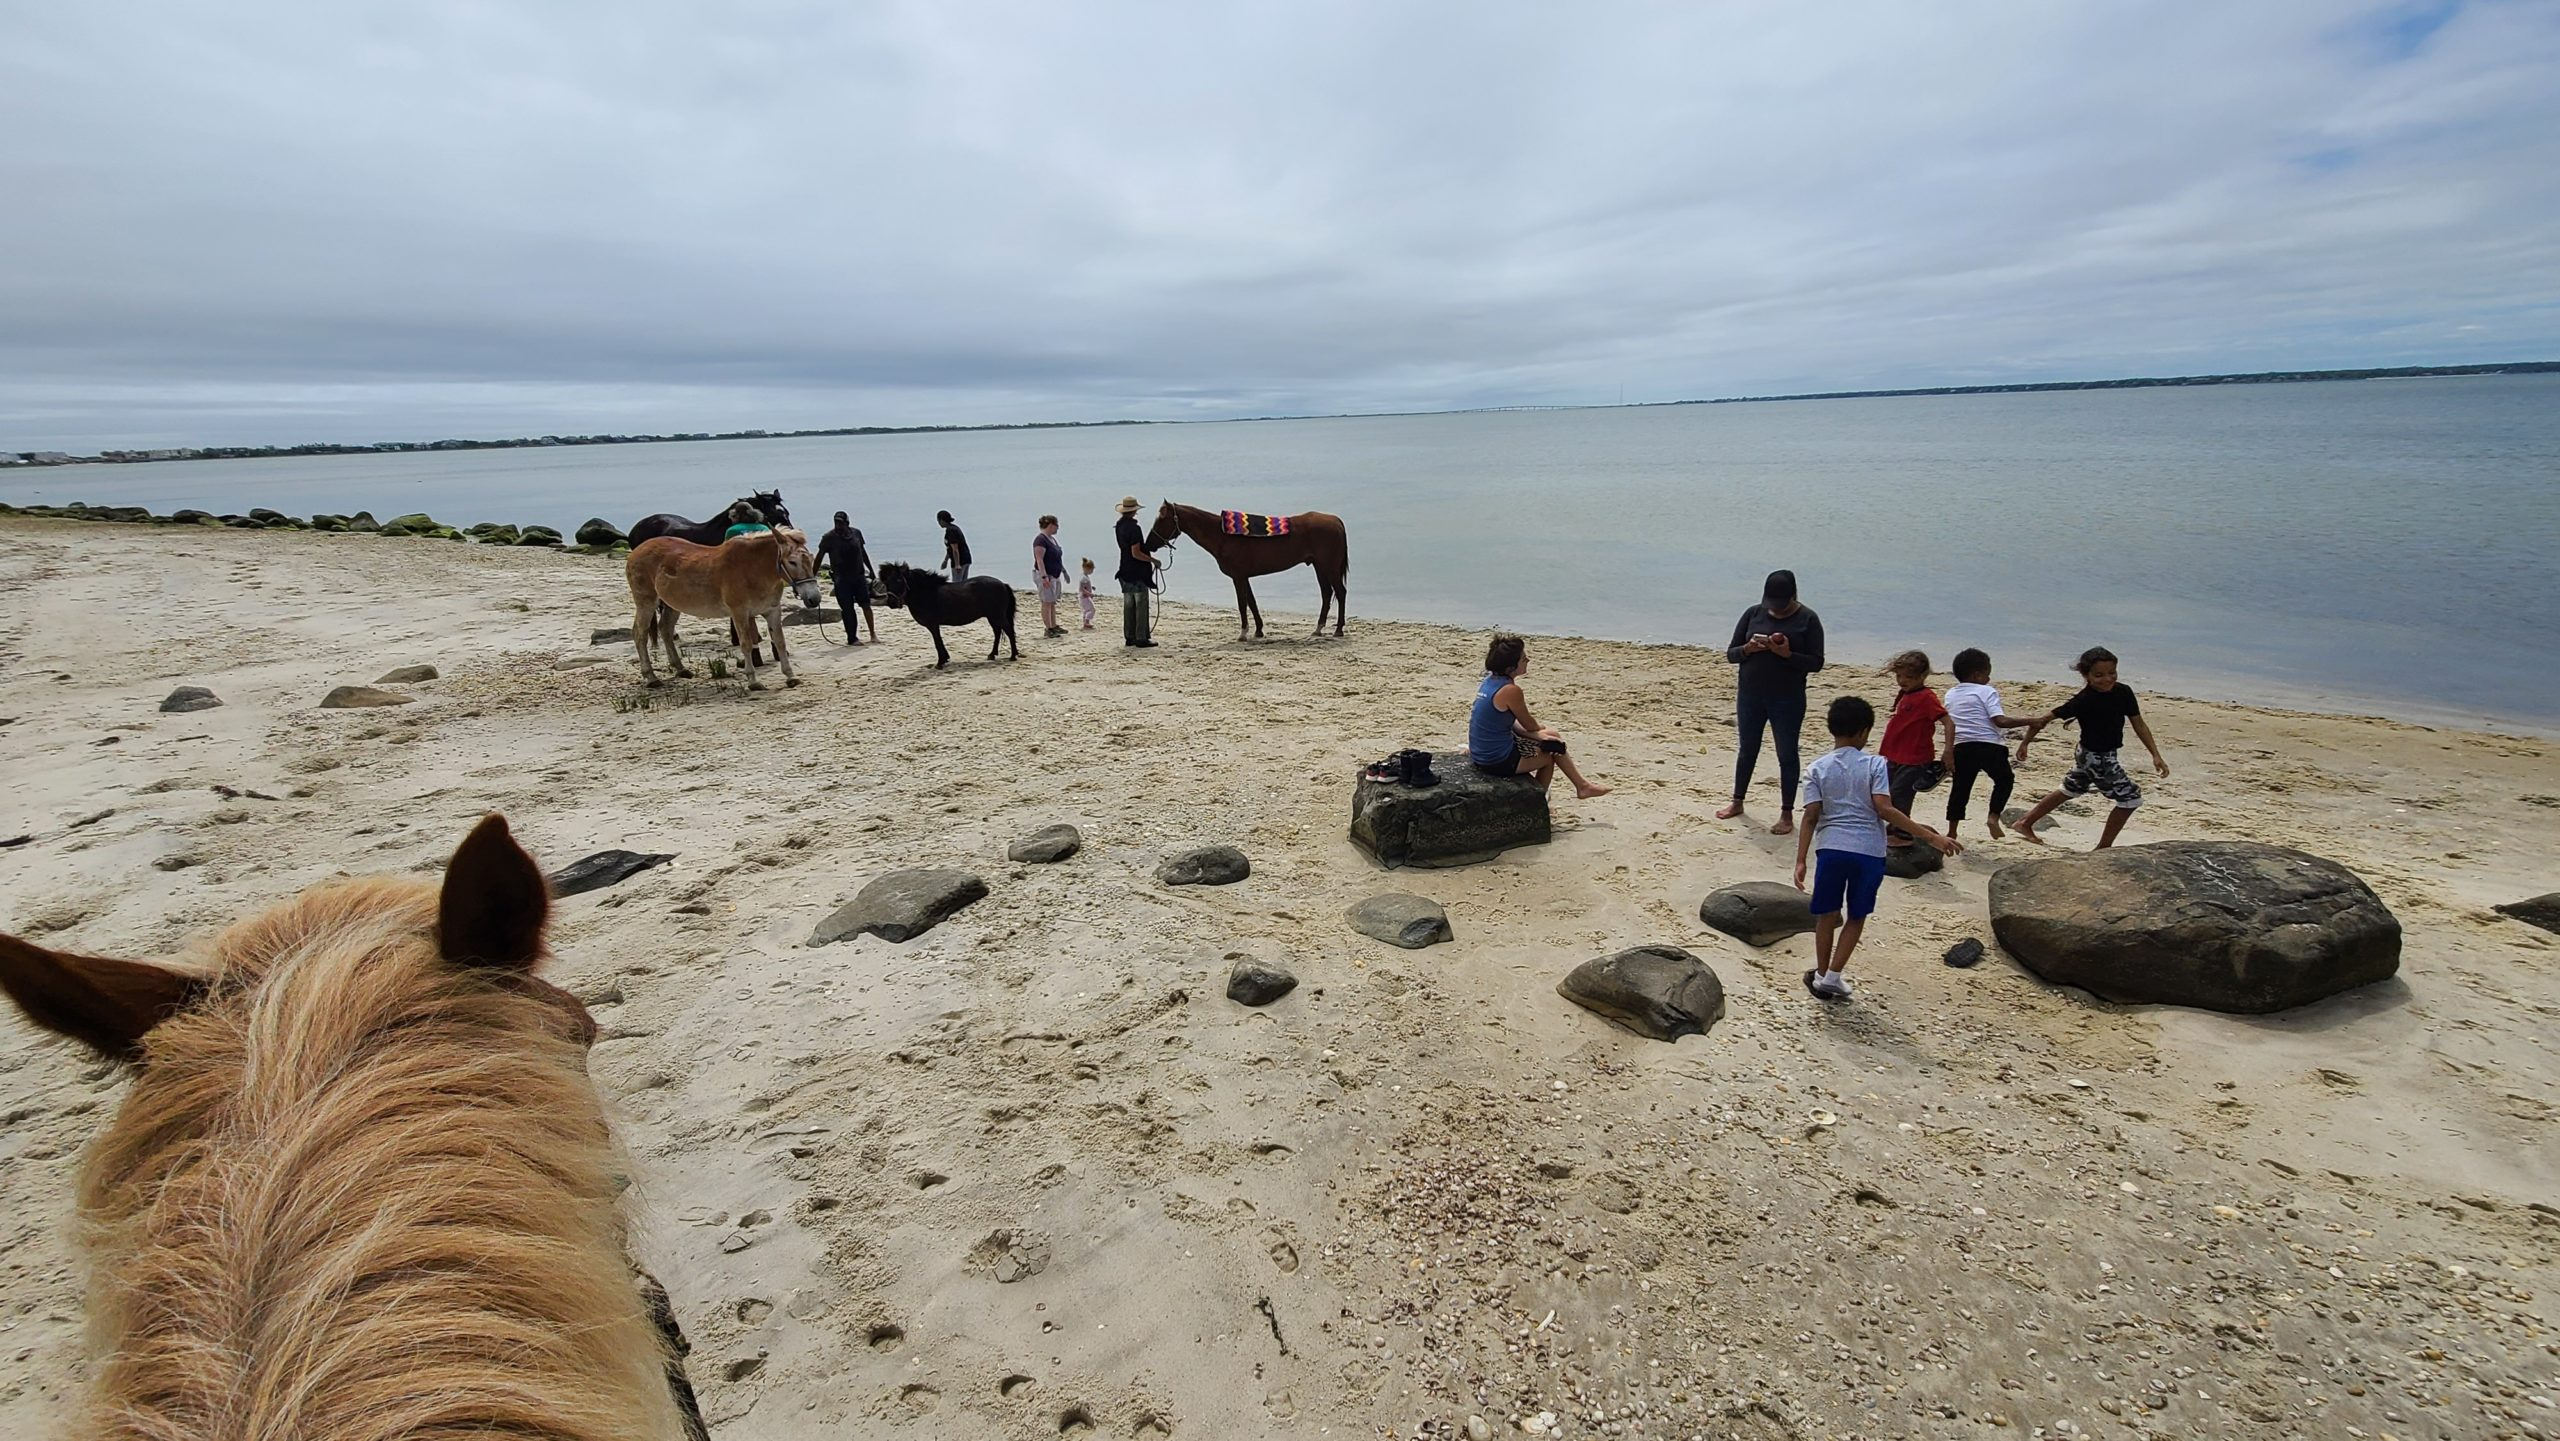 The horses have a day at the beach.